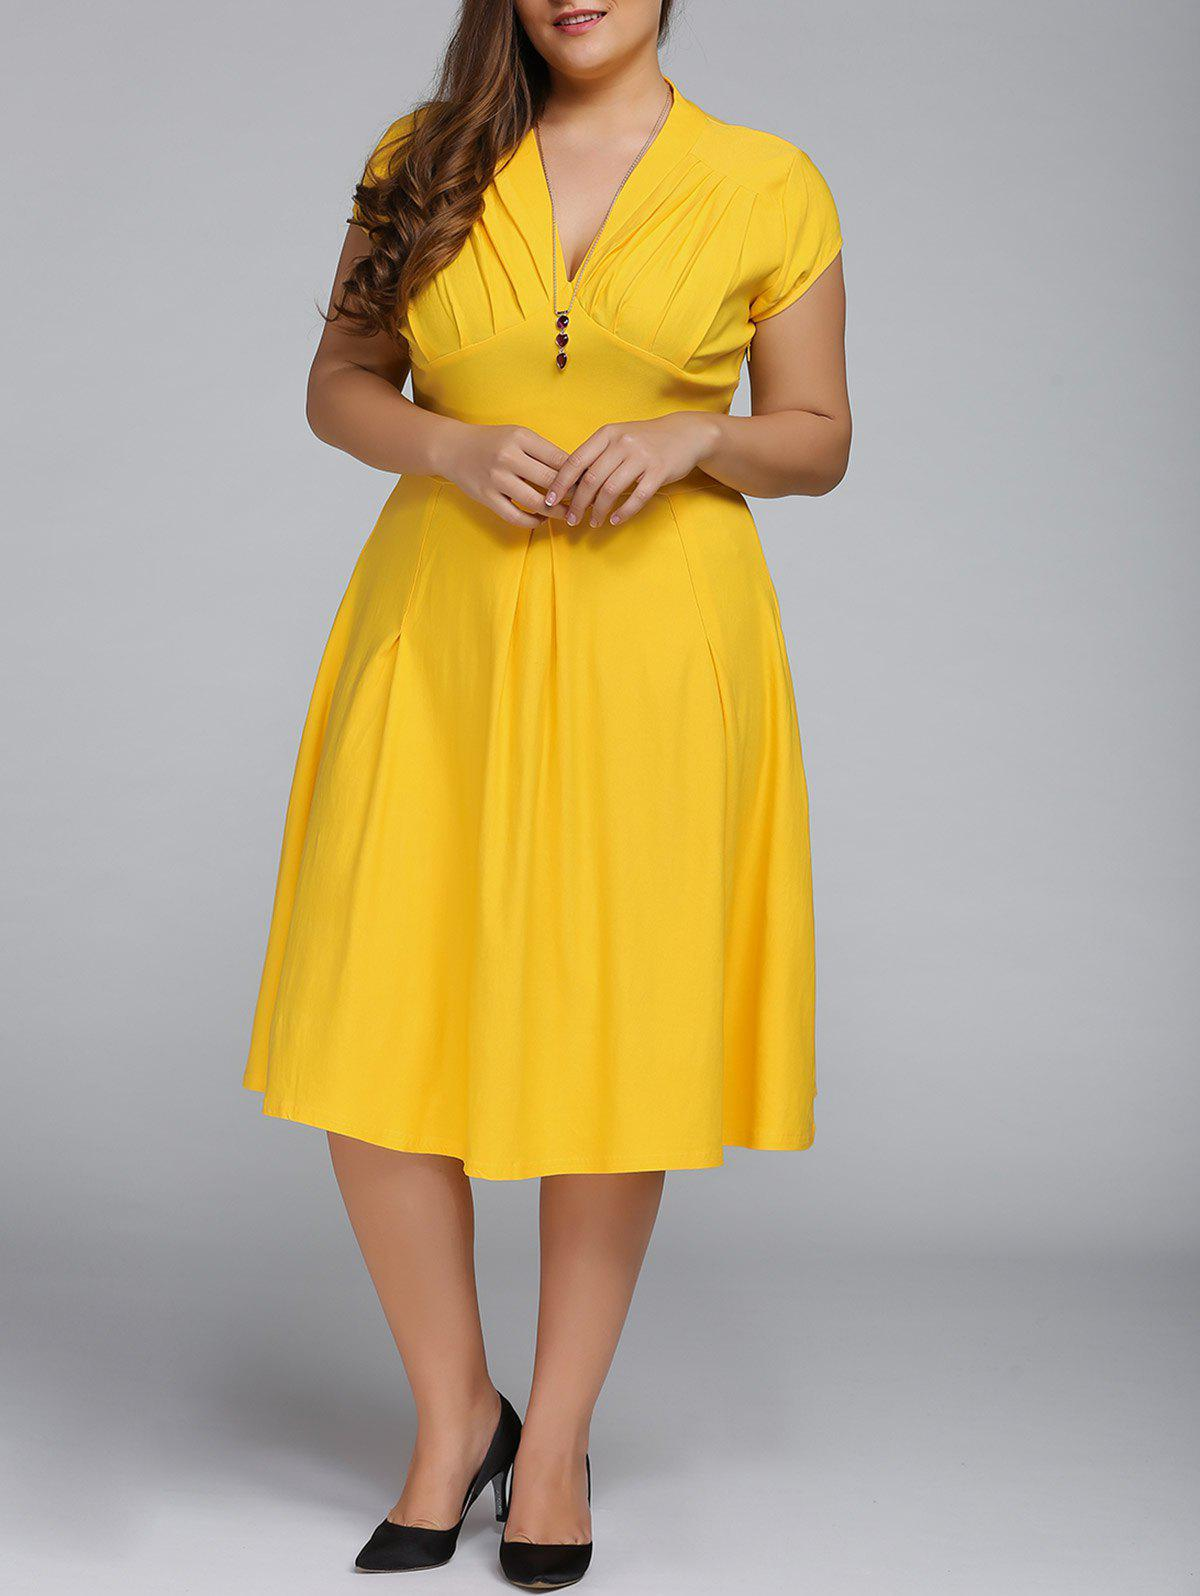 V Neck Plus Size A Line Party DressWOMEN<br><br>Size: XL; Color: YELLOW; Style: Vintage; Material: Cotton Blend; Silhouette: A-Line; Dresses Length: Knee-Length; Neckline: V-Neck; Sleeve Length: Short Sleeves; Waist: Empire; Embellishment: Pleated; Pattern Type: Solid; Elasticity: Elastic; With Belt: No; Season: Fall,Spring,Summer; Weight: 0.478kg; Package Contents: 1 x Dress;